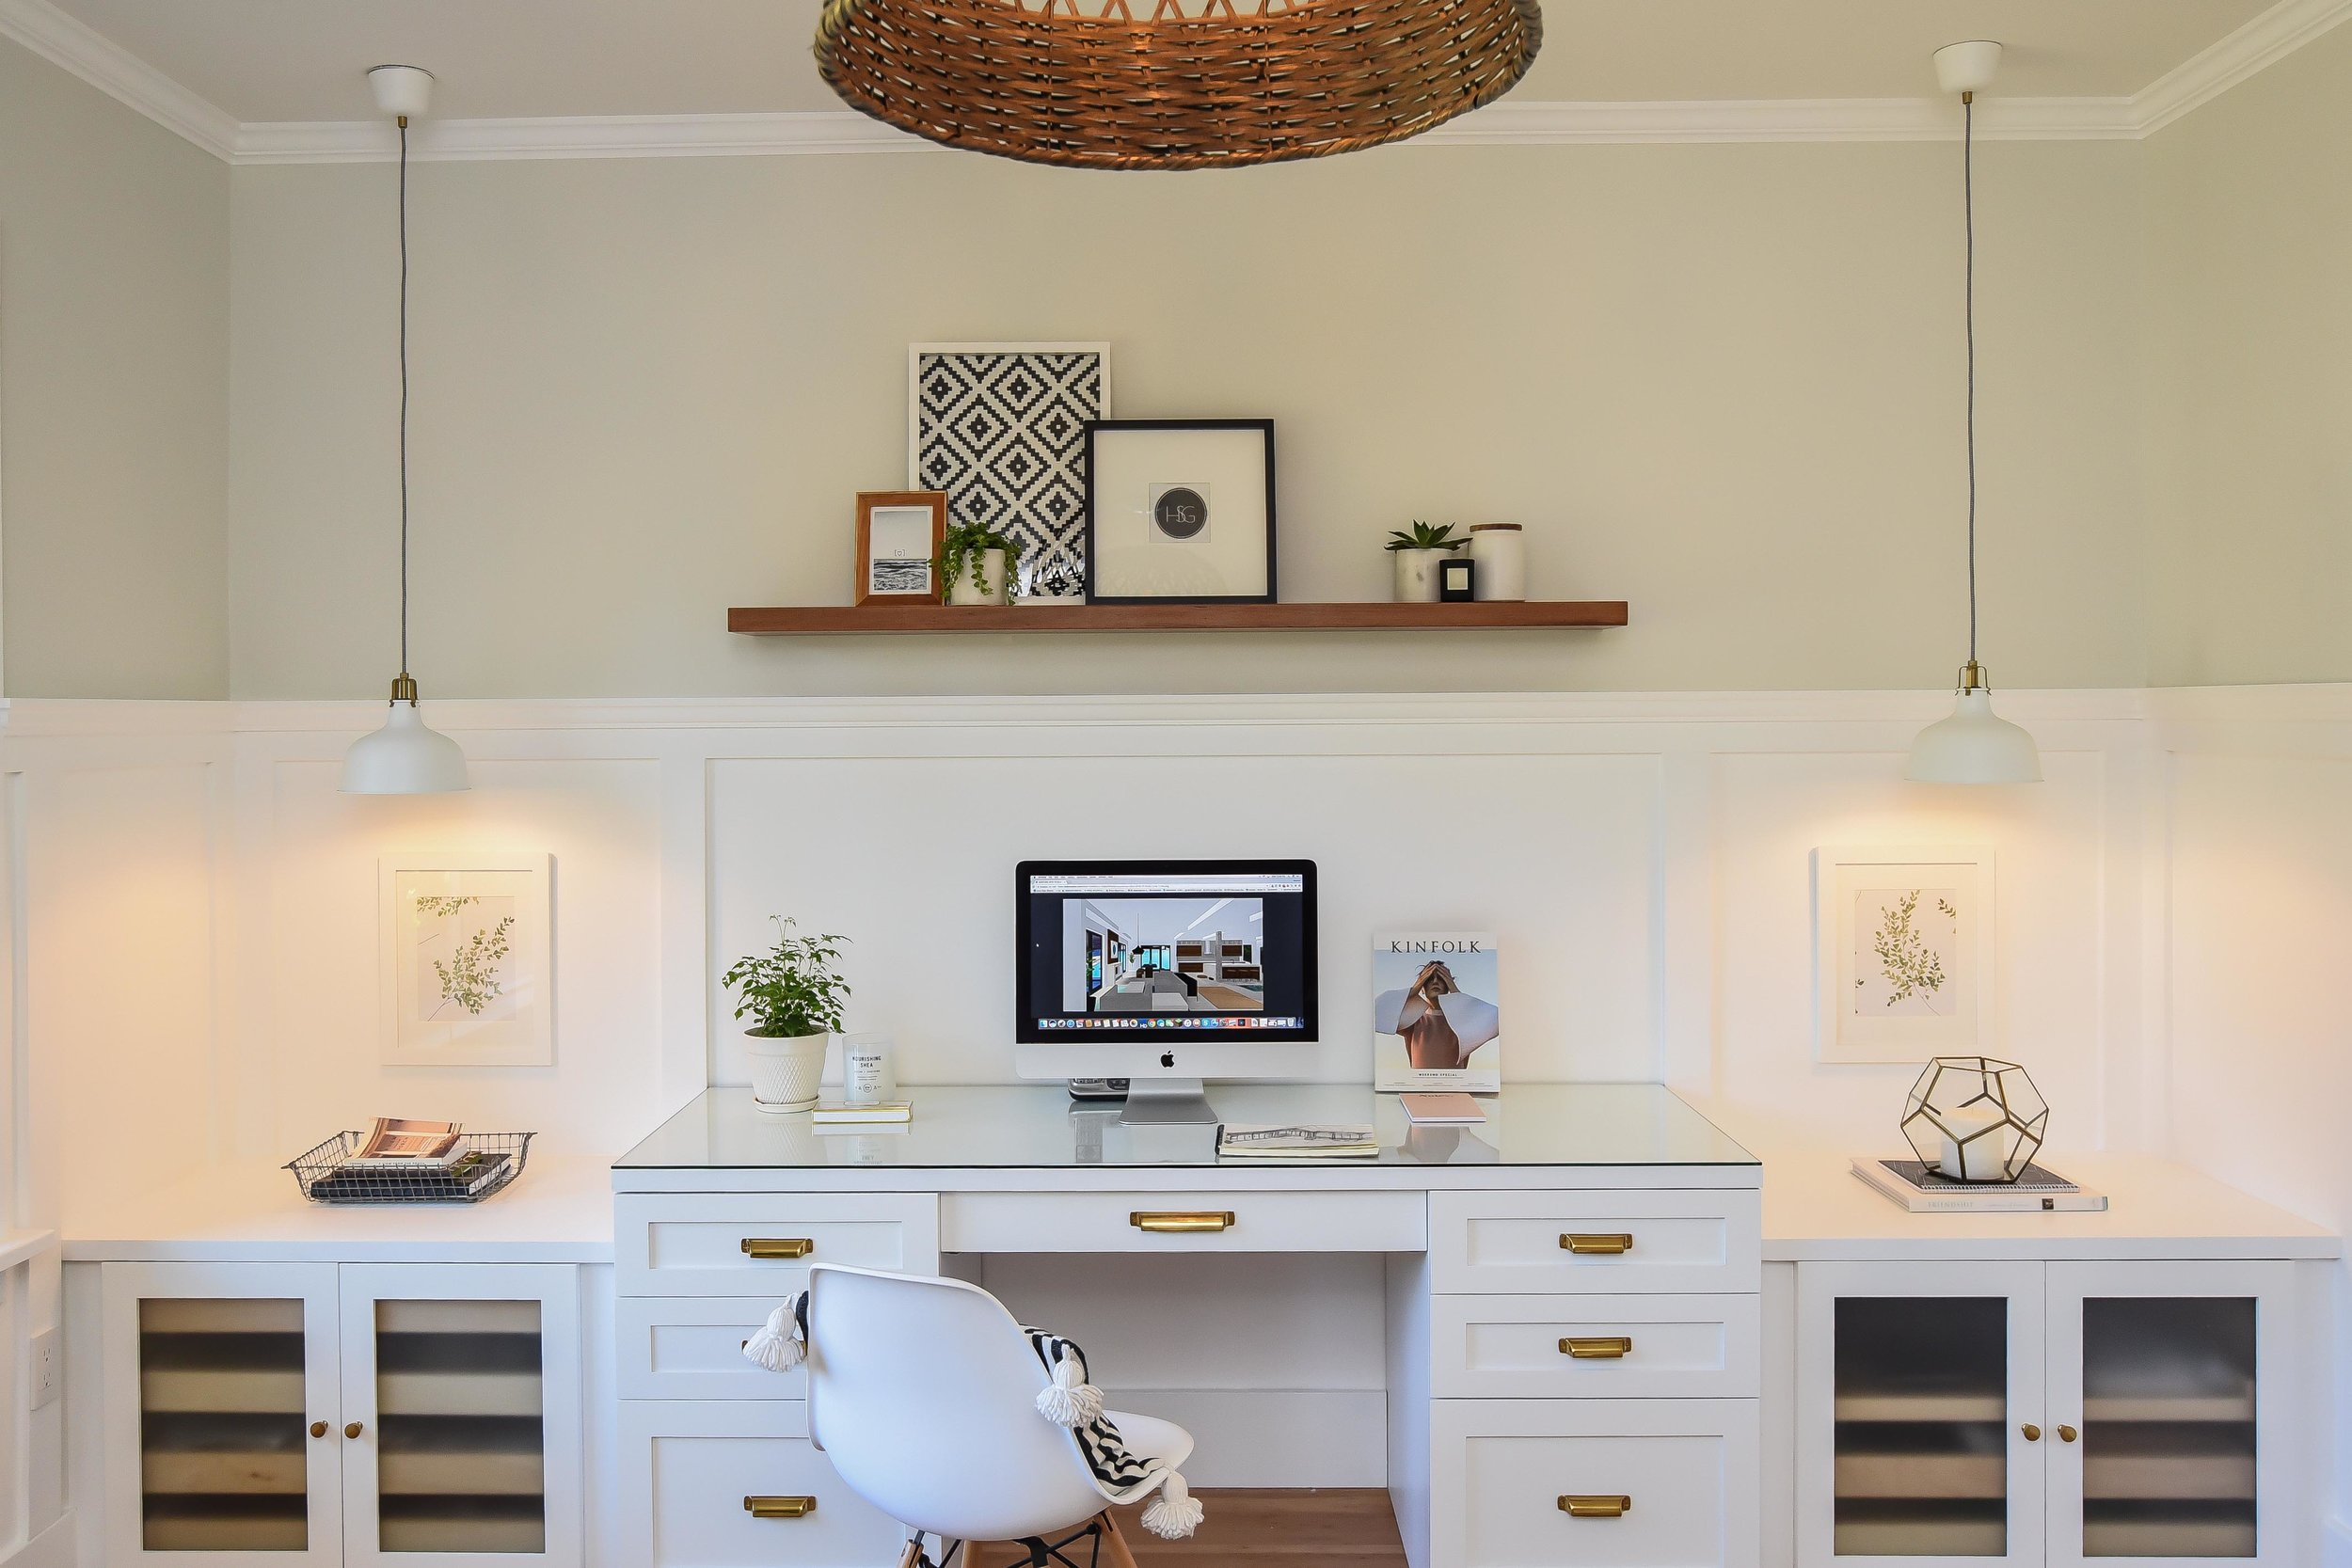 We completely redesigned and renovated this former bedroom into the new home for our studio.In order to create value for resale or rental at a later date, we designed this so that the desk can be pulled out and replaced with a queen bed. The side tables then become night tables.